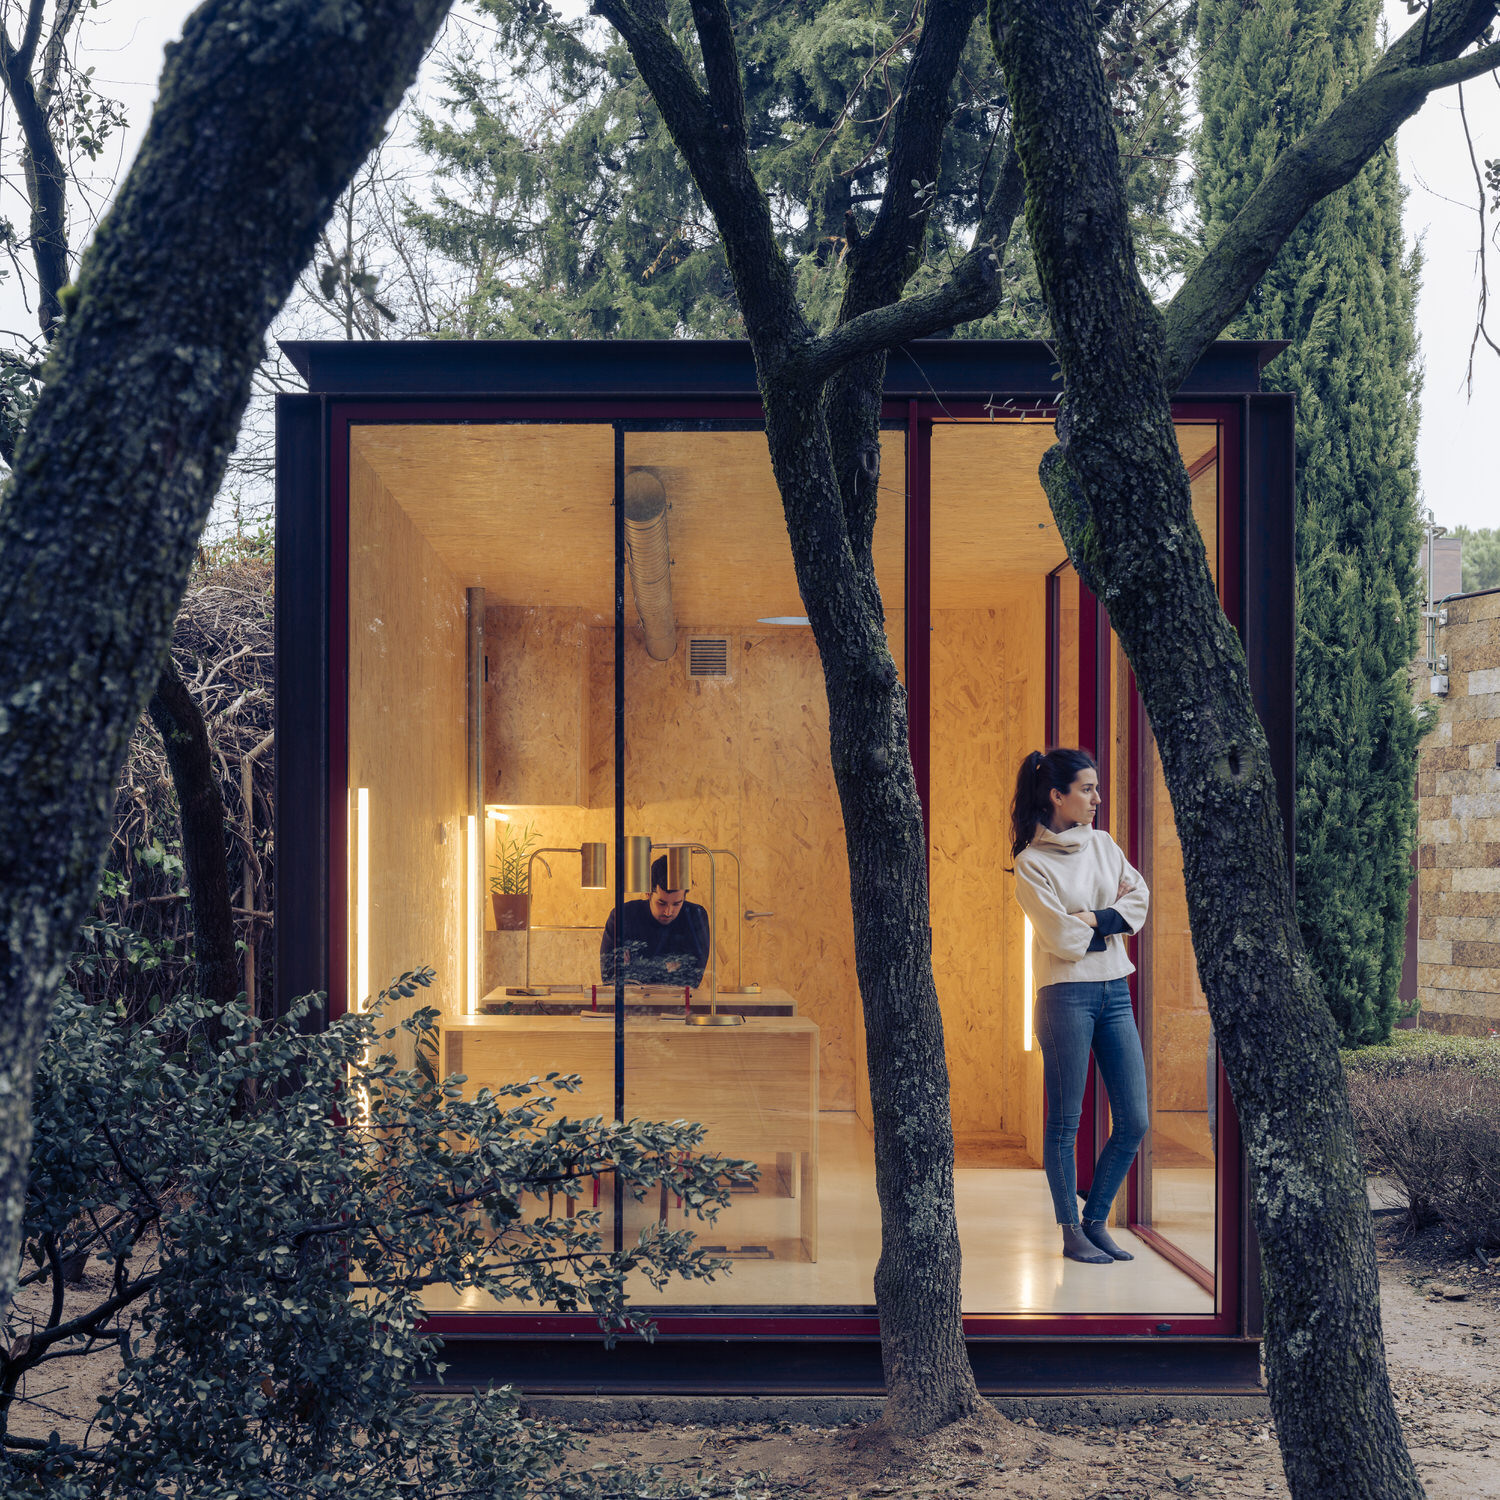 Ignacio De La Vega, Tini Office, Prefab Cabins, Corten Steel OSB Wood | Yellowtrace